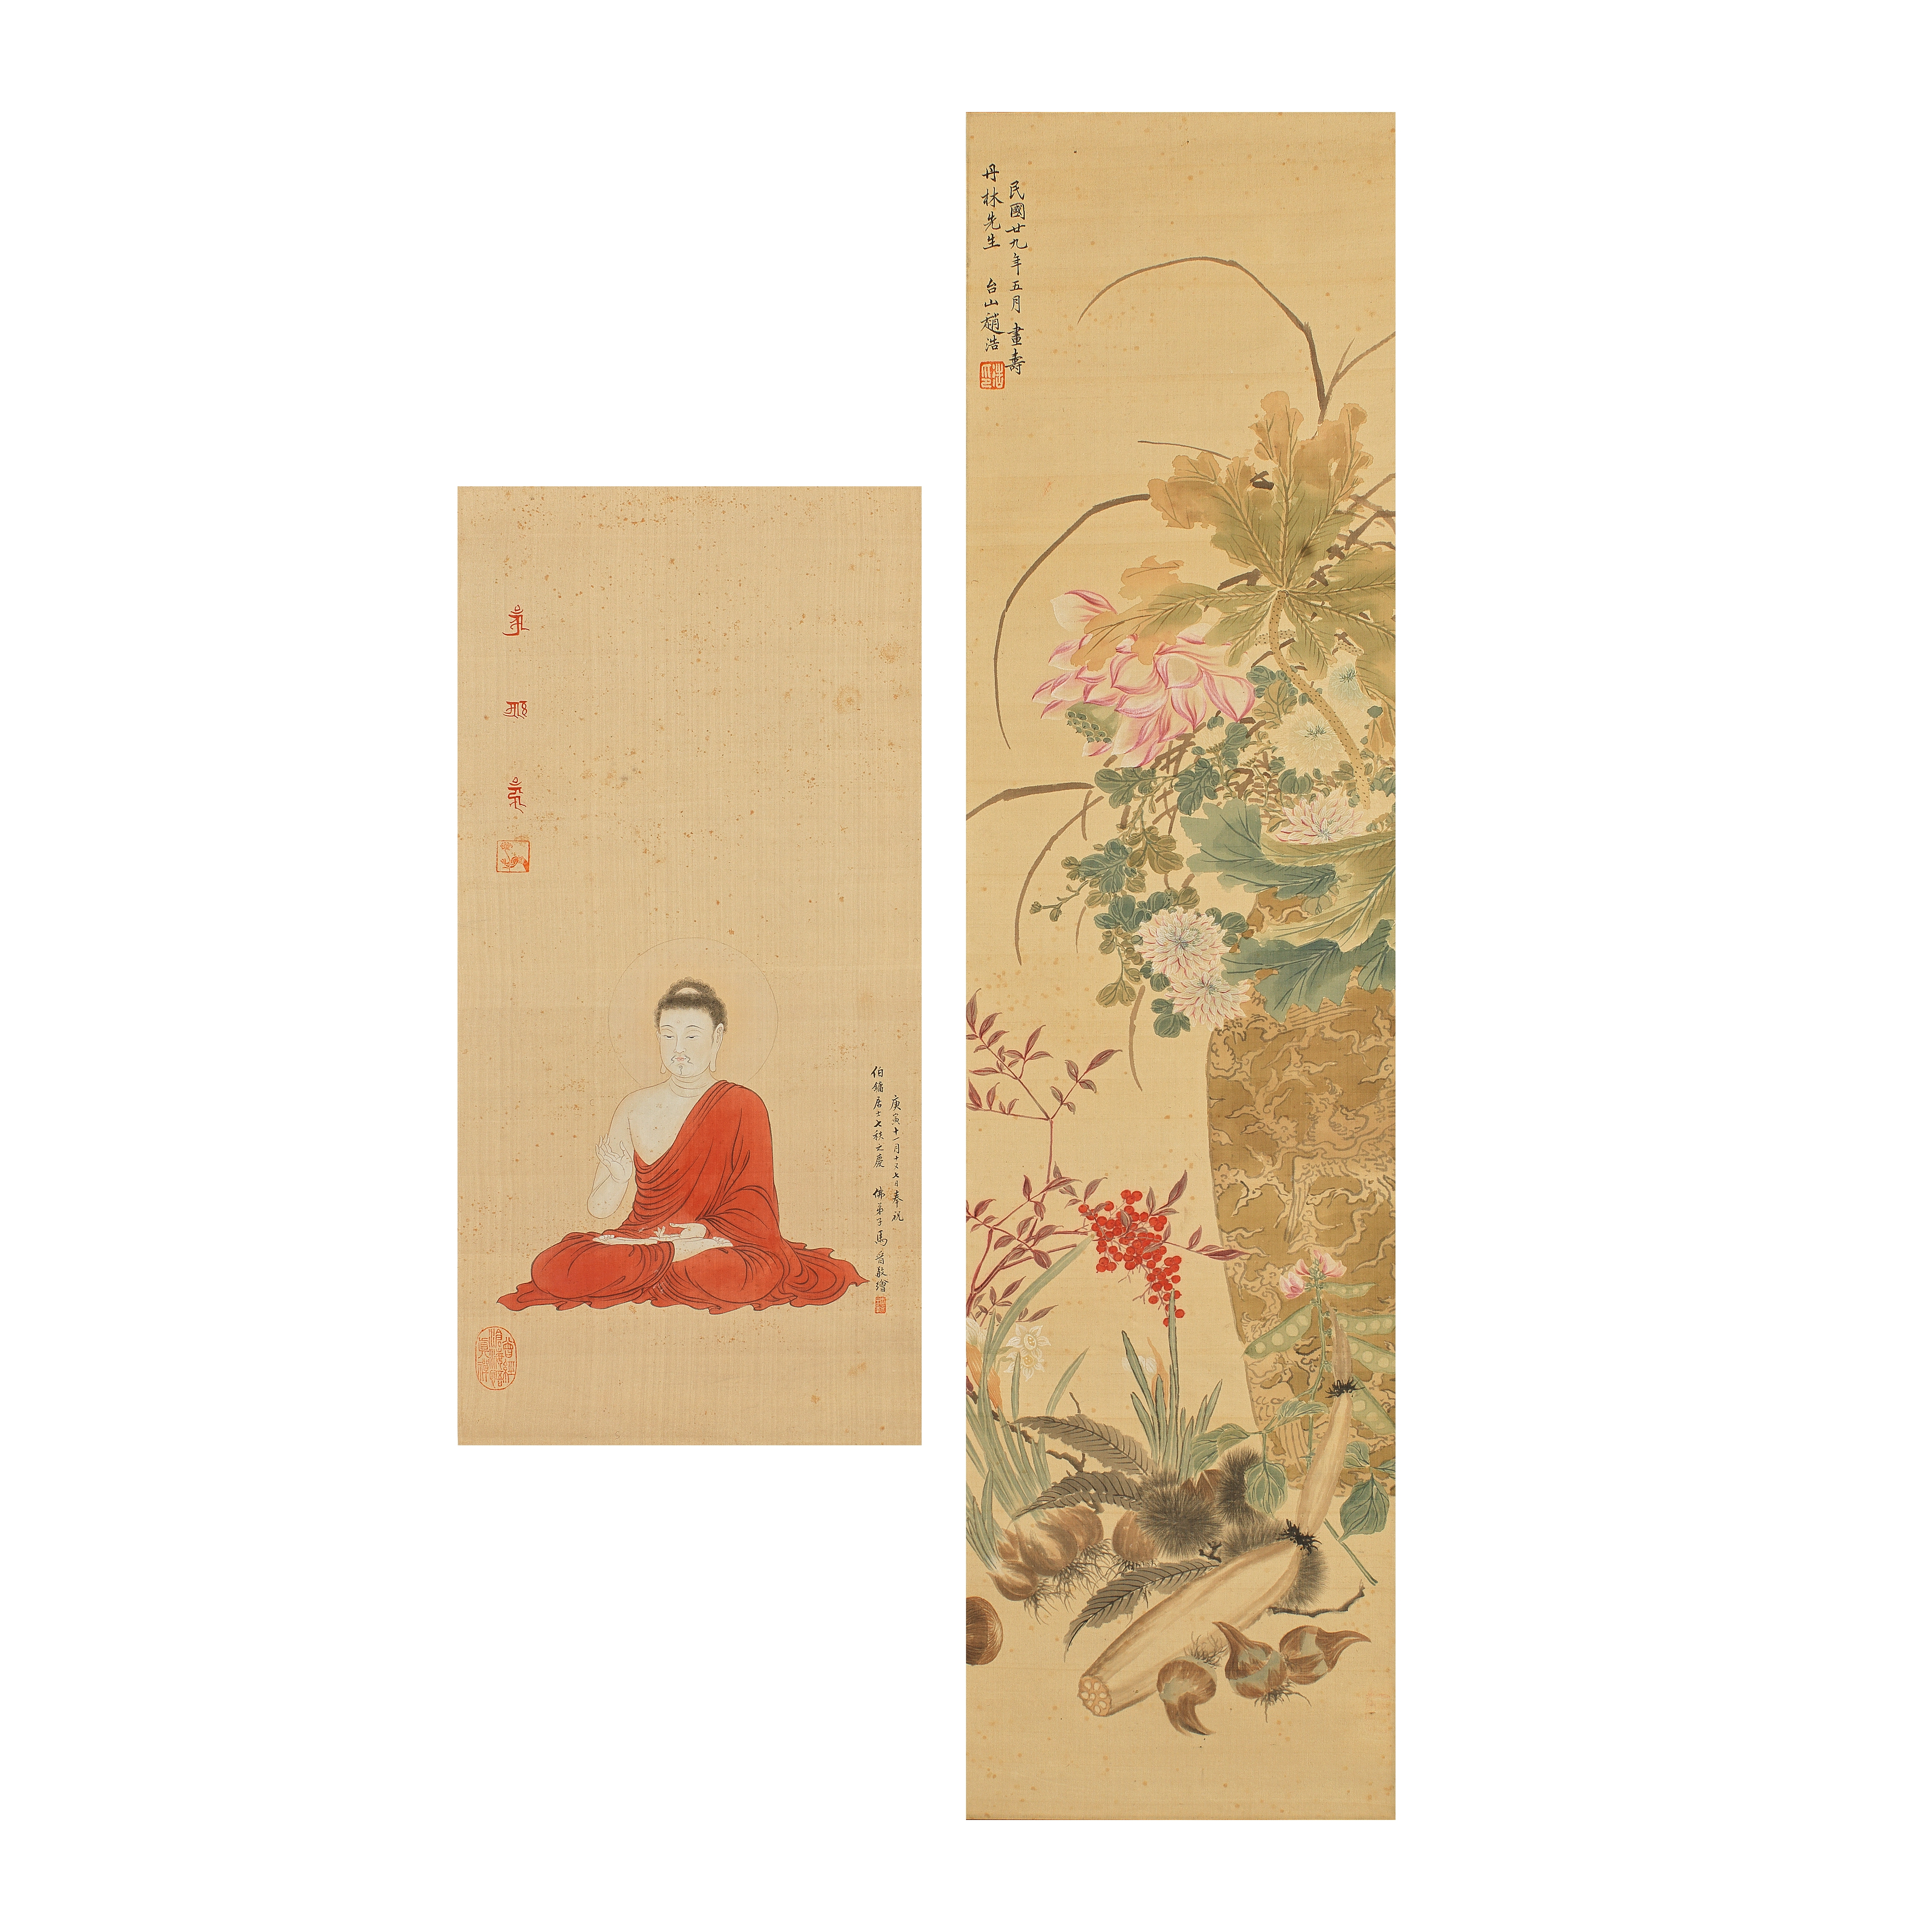 RESPECTIVELY IN THE MANNER OF ZHAO HAO (1881-1947) AND IN THE MANNER OF MA JIN (1900—1970) ...